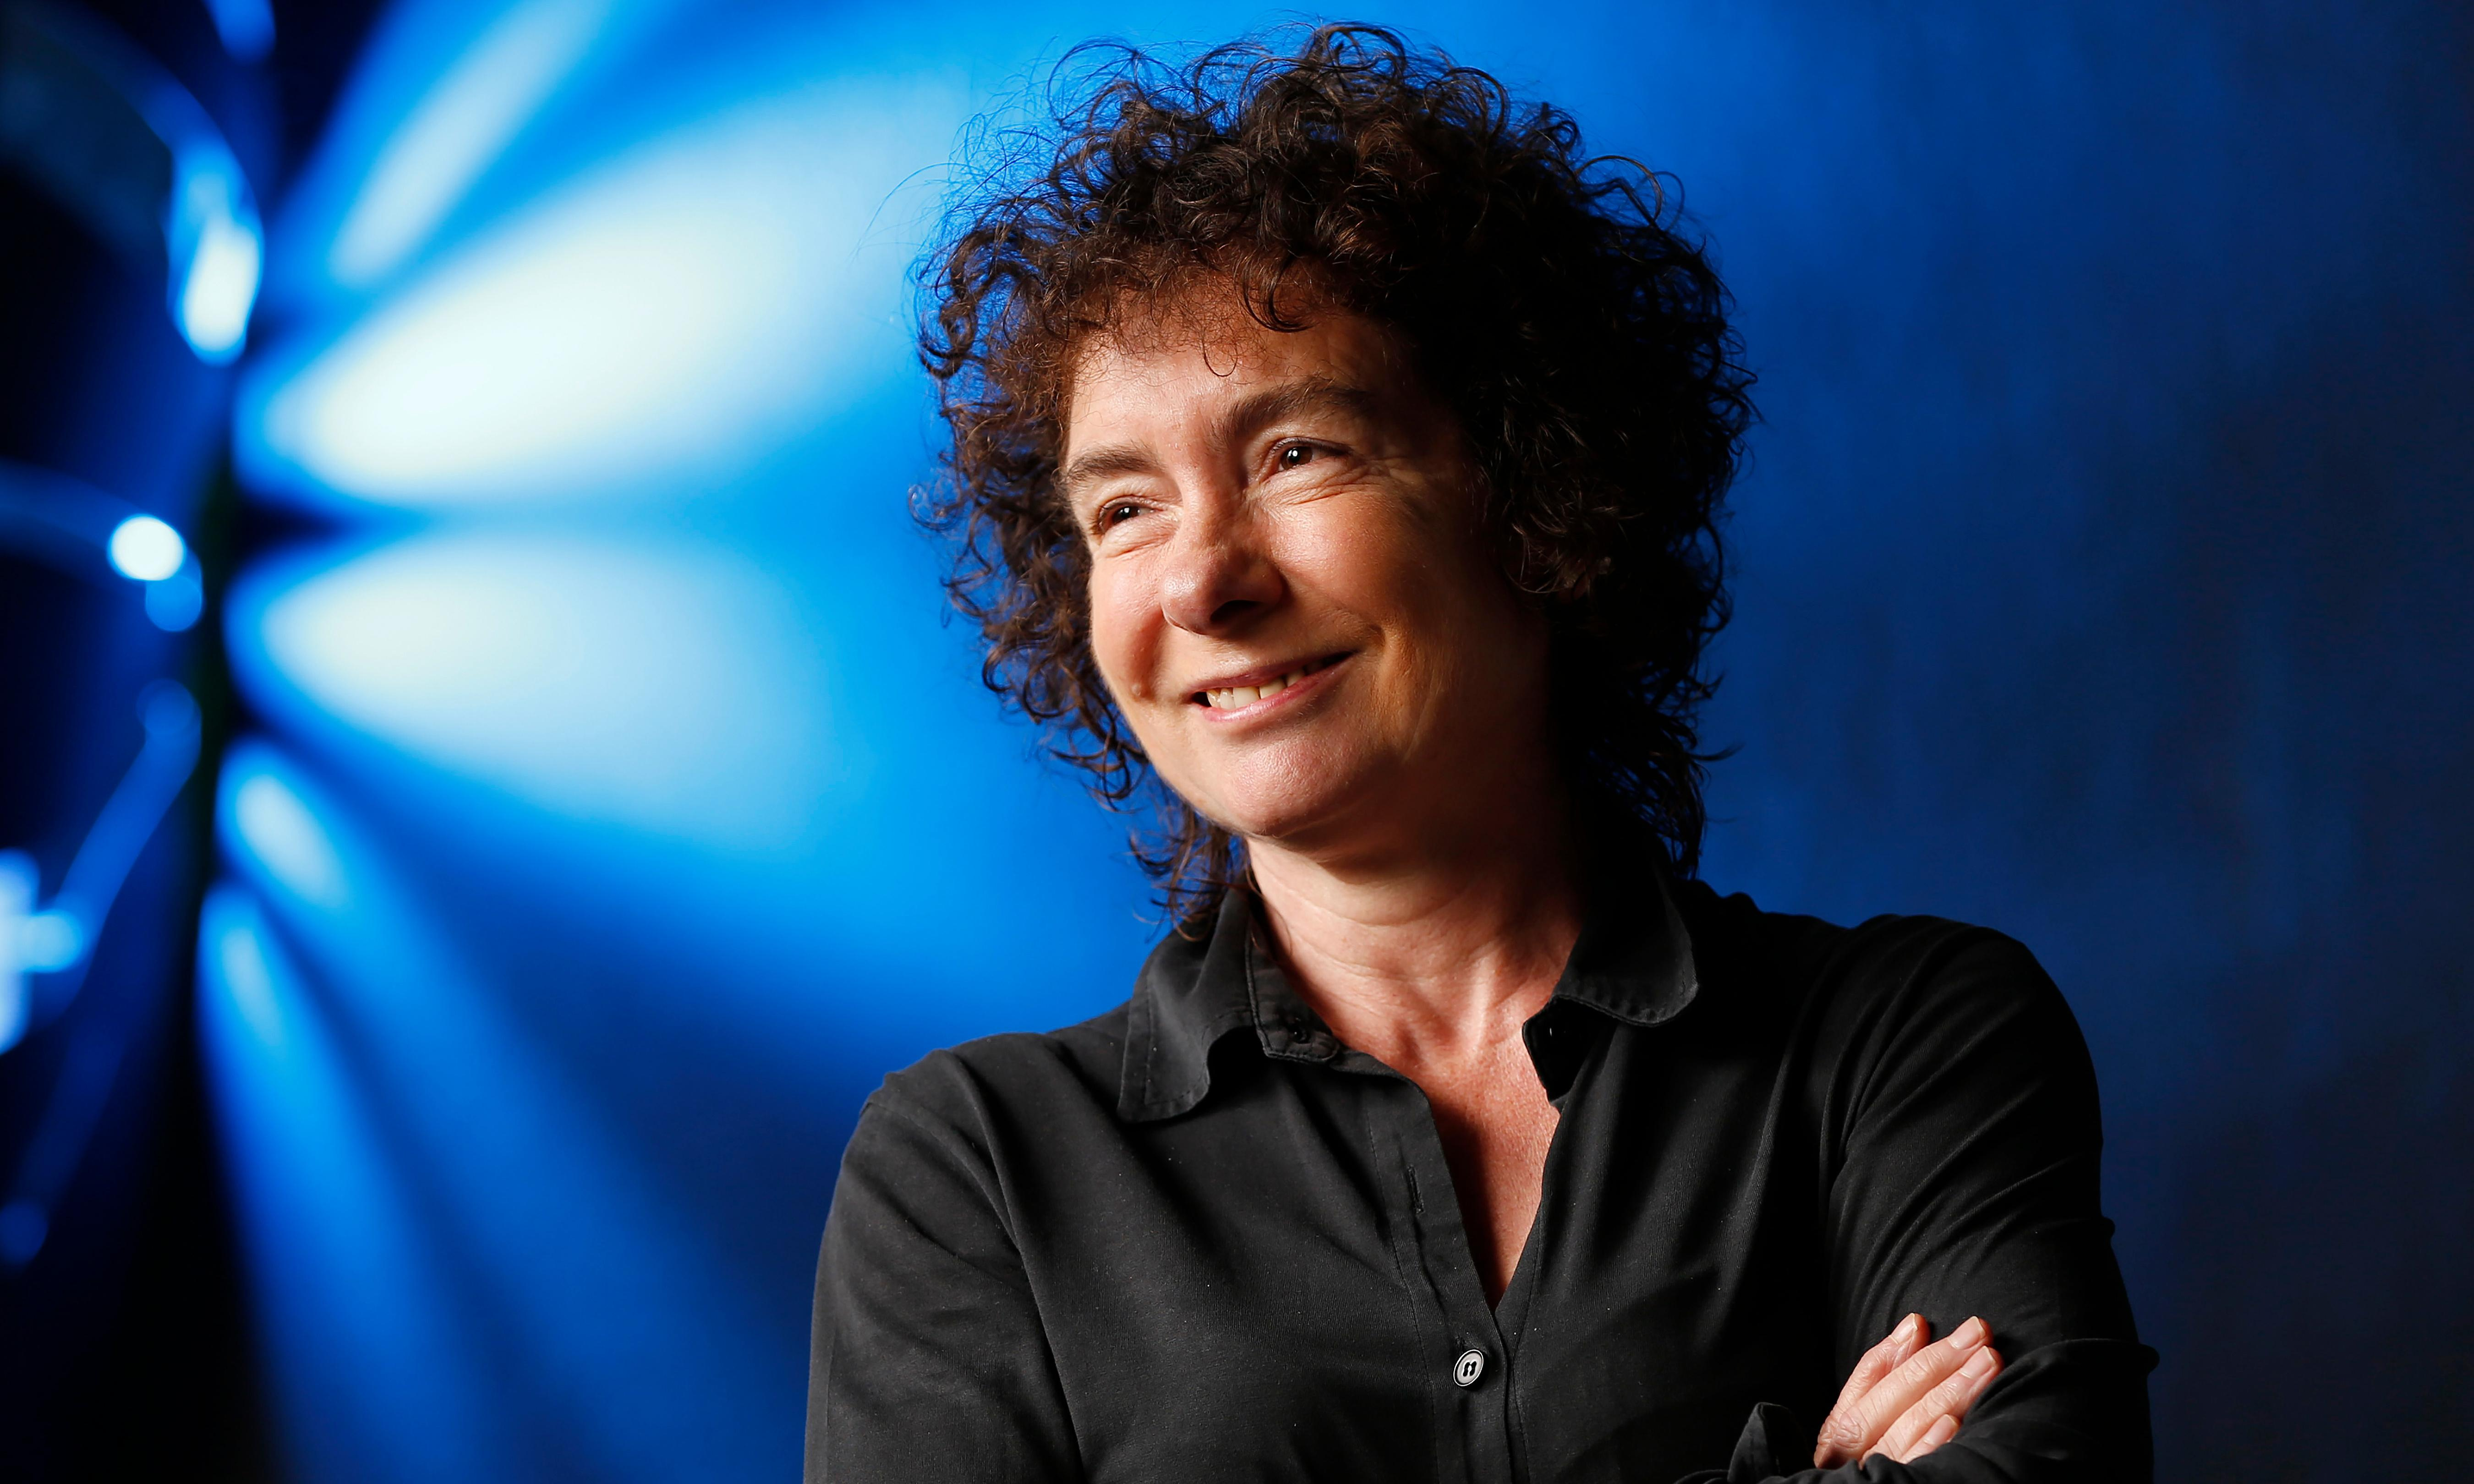 Jeanette Winterson: 'I couldn't finish Fifty Shades. Are straight women really having such terrible sex?'